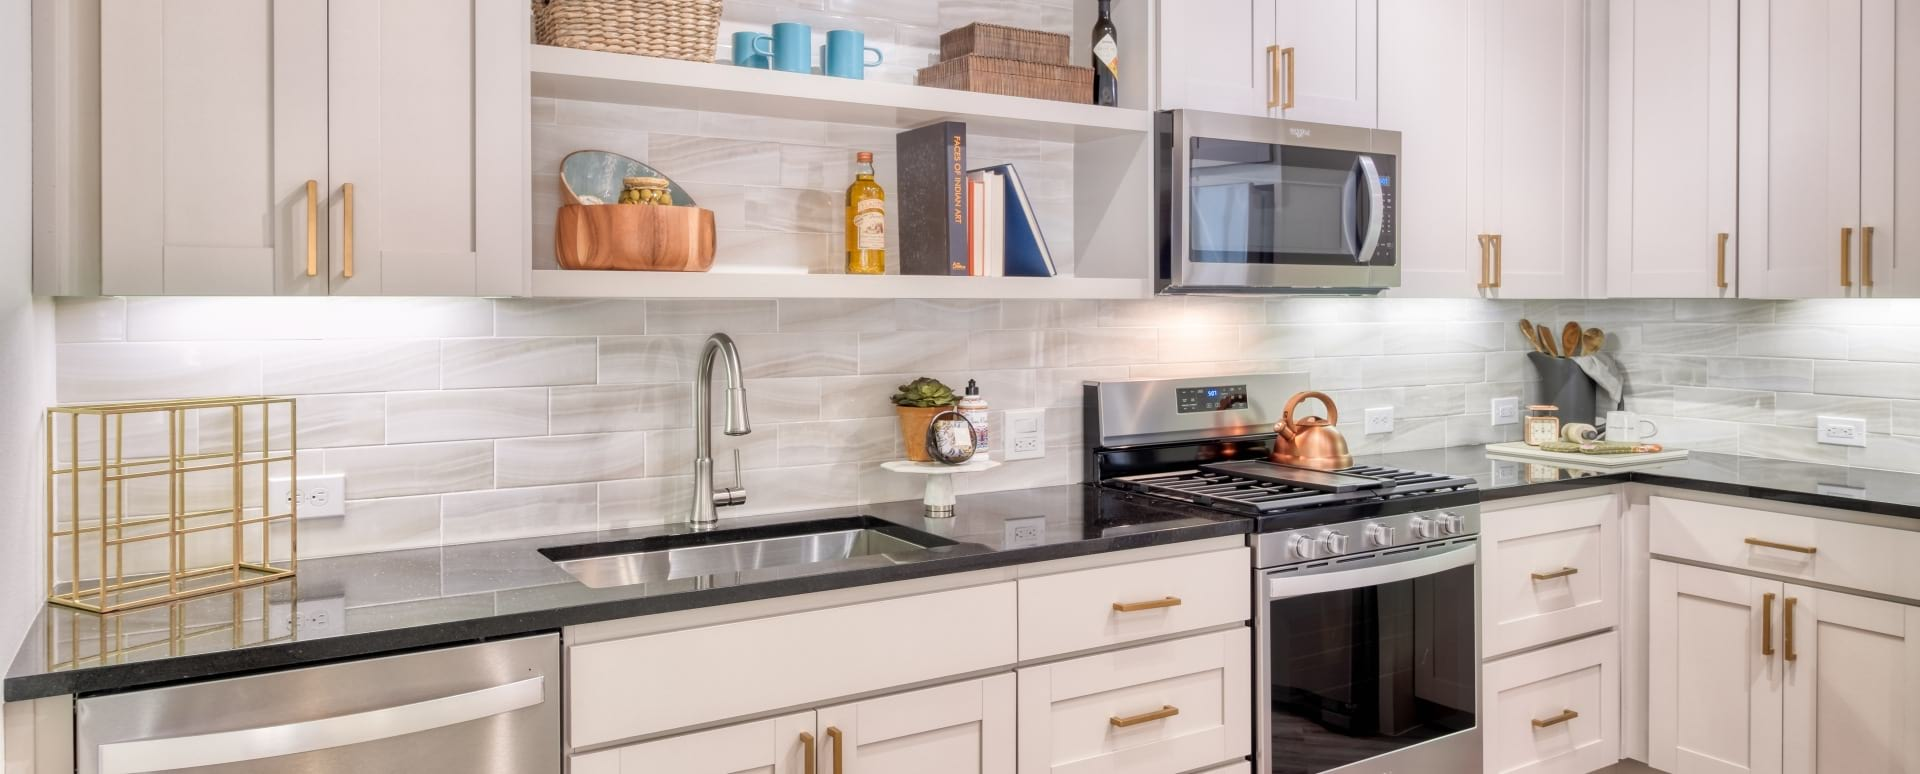 Gourmet Kitchen with Modern Lighting at Cortland Biltmore Apartments